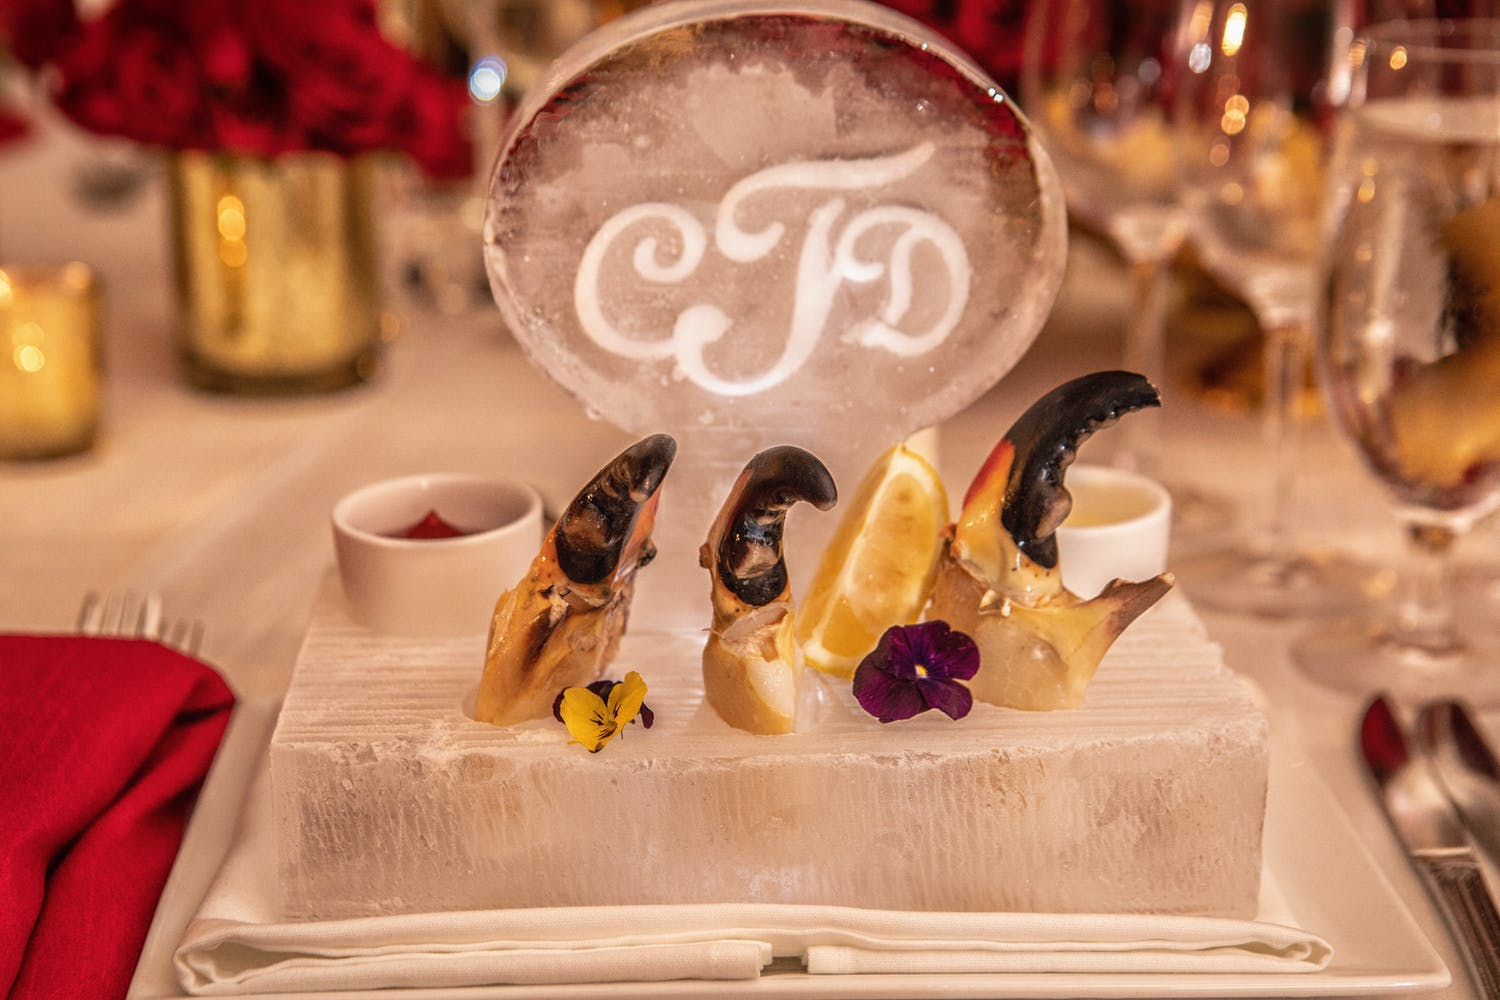 Individual mini shrimp cocktail, monogrammed ice sculpture on dinner plate at micro wedding   PartySlate